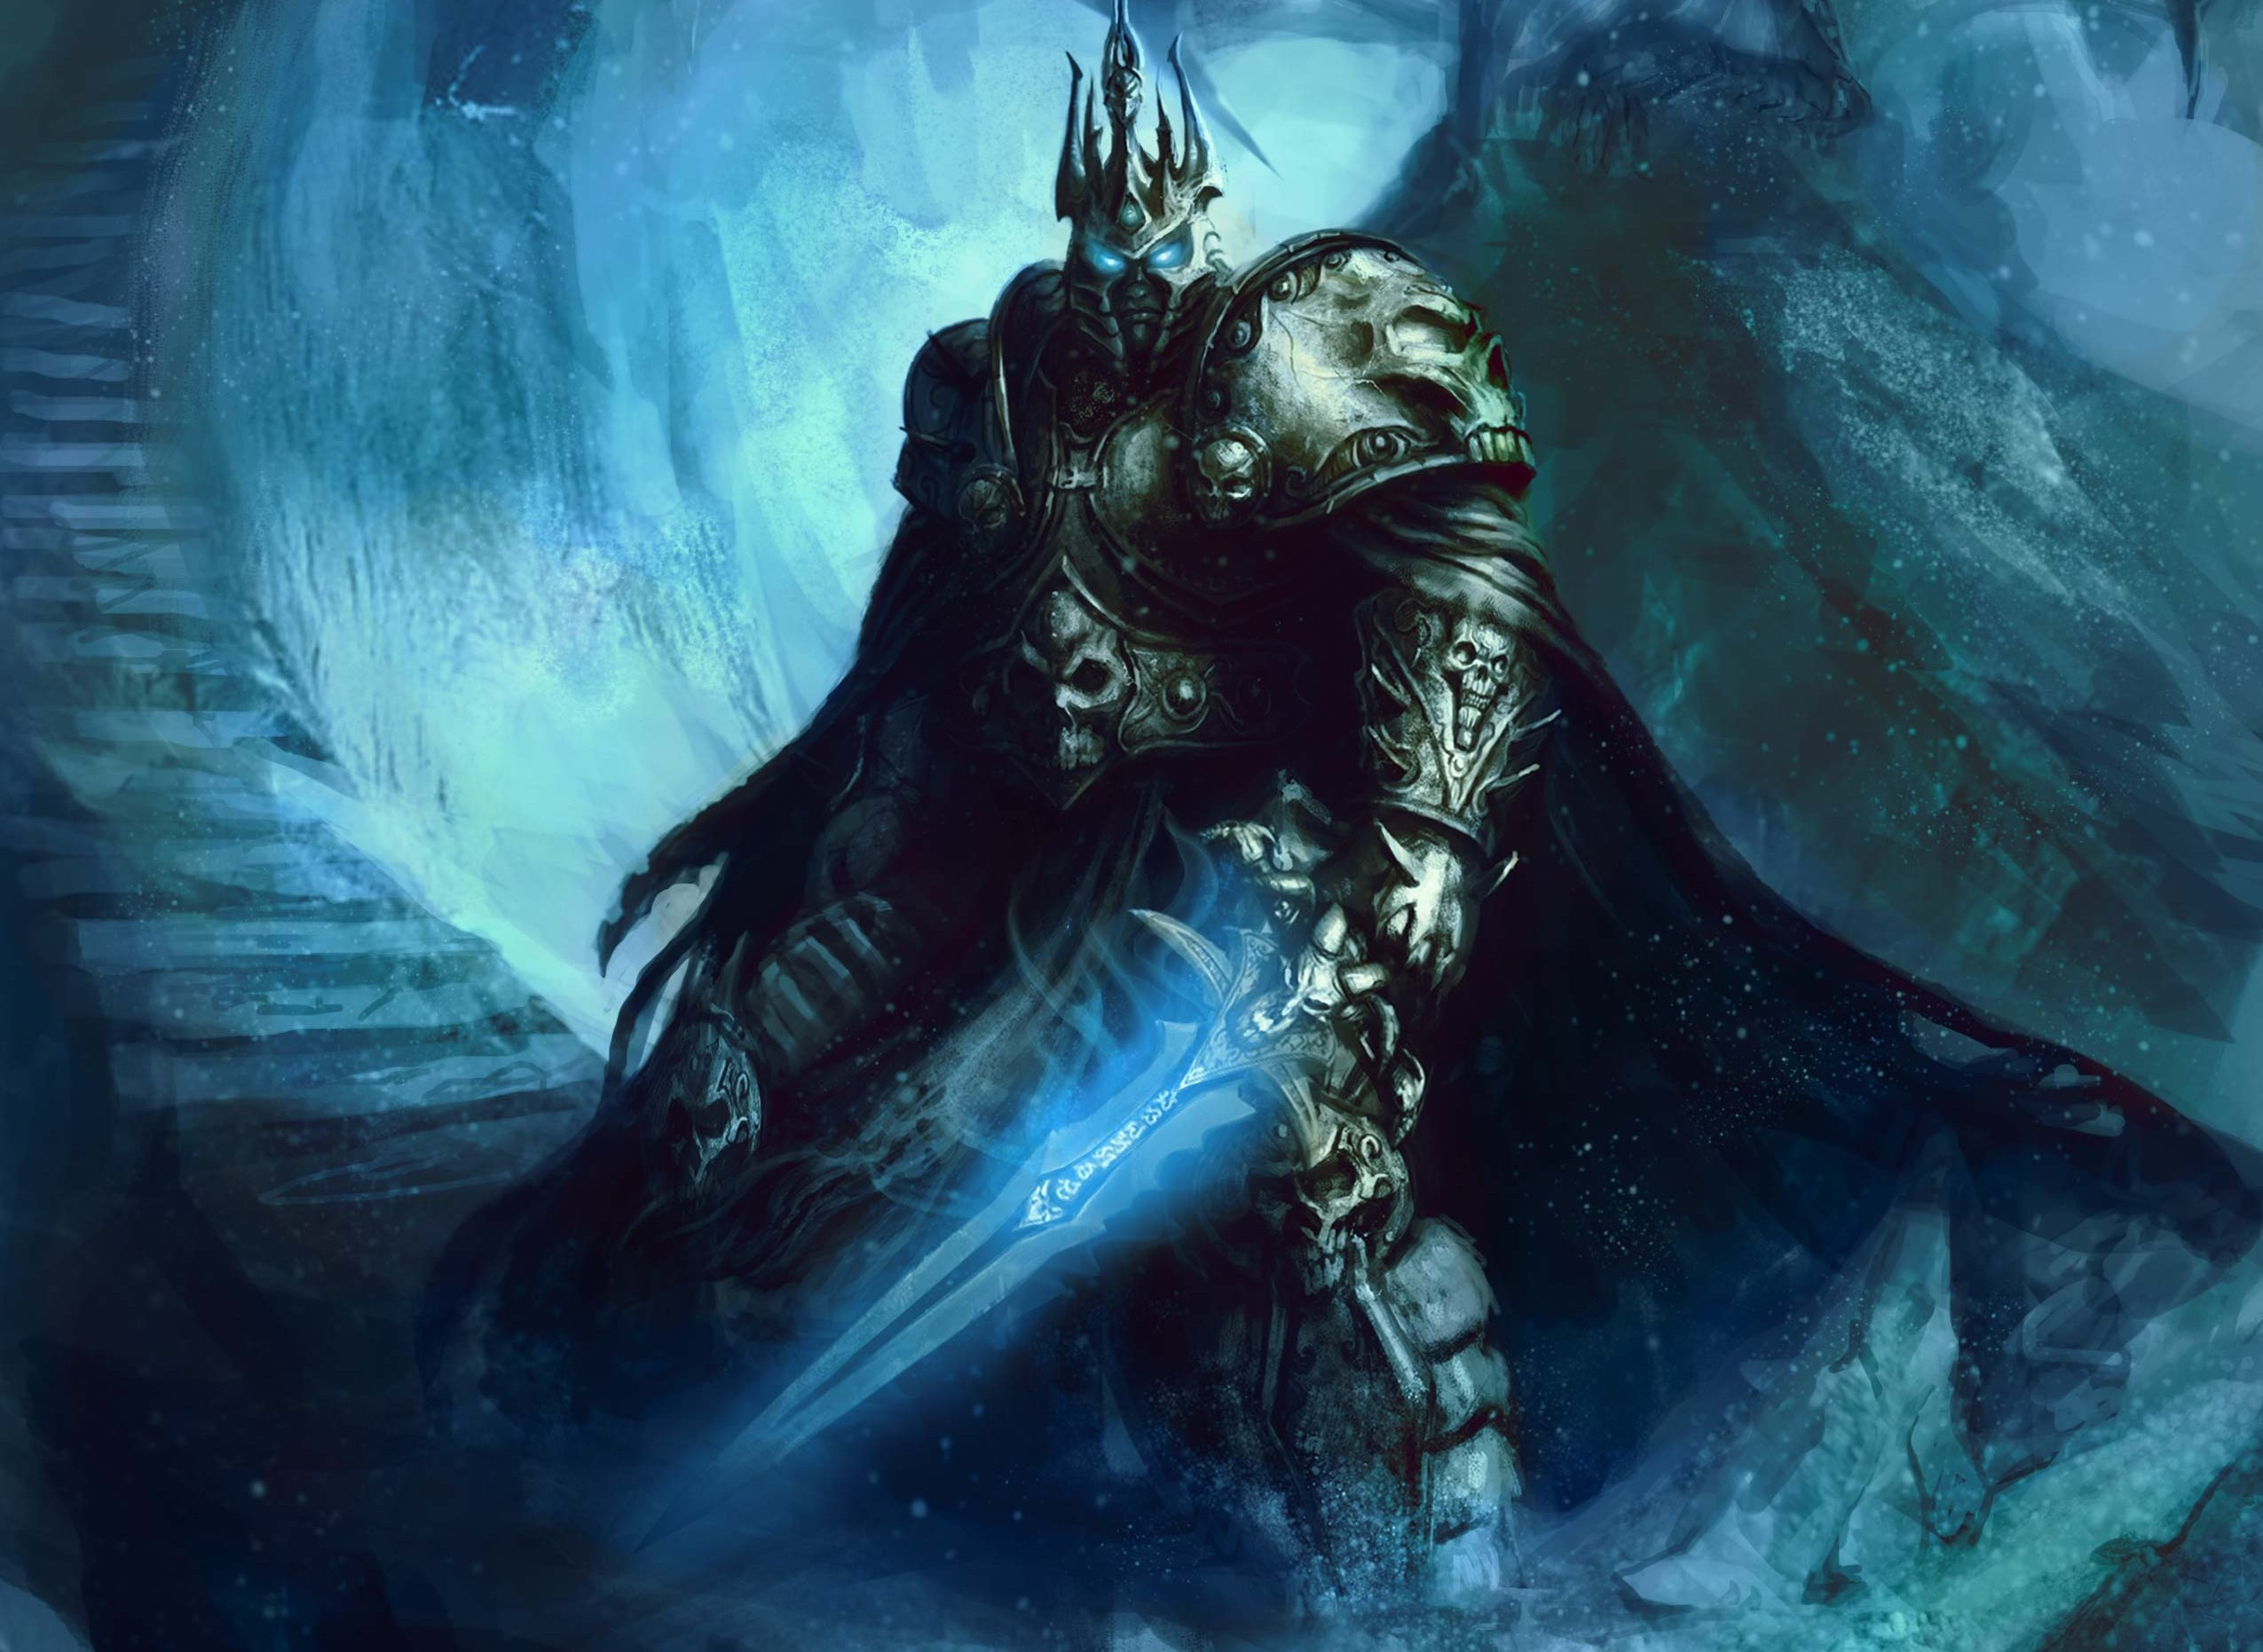 Wallpaper Of Fanart World Of Warcraft Lich King Arthas